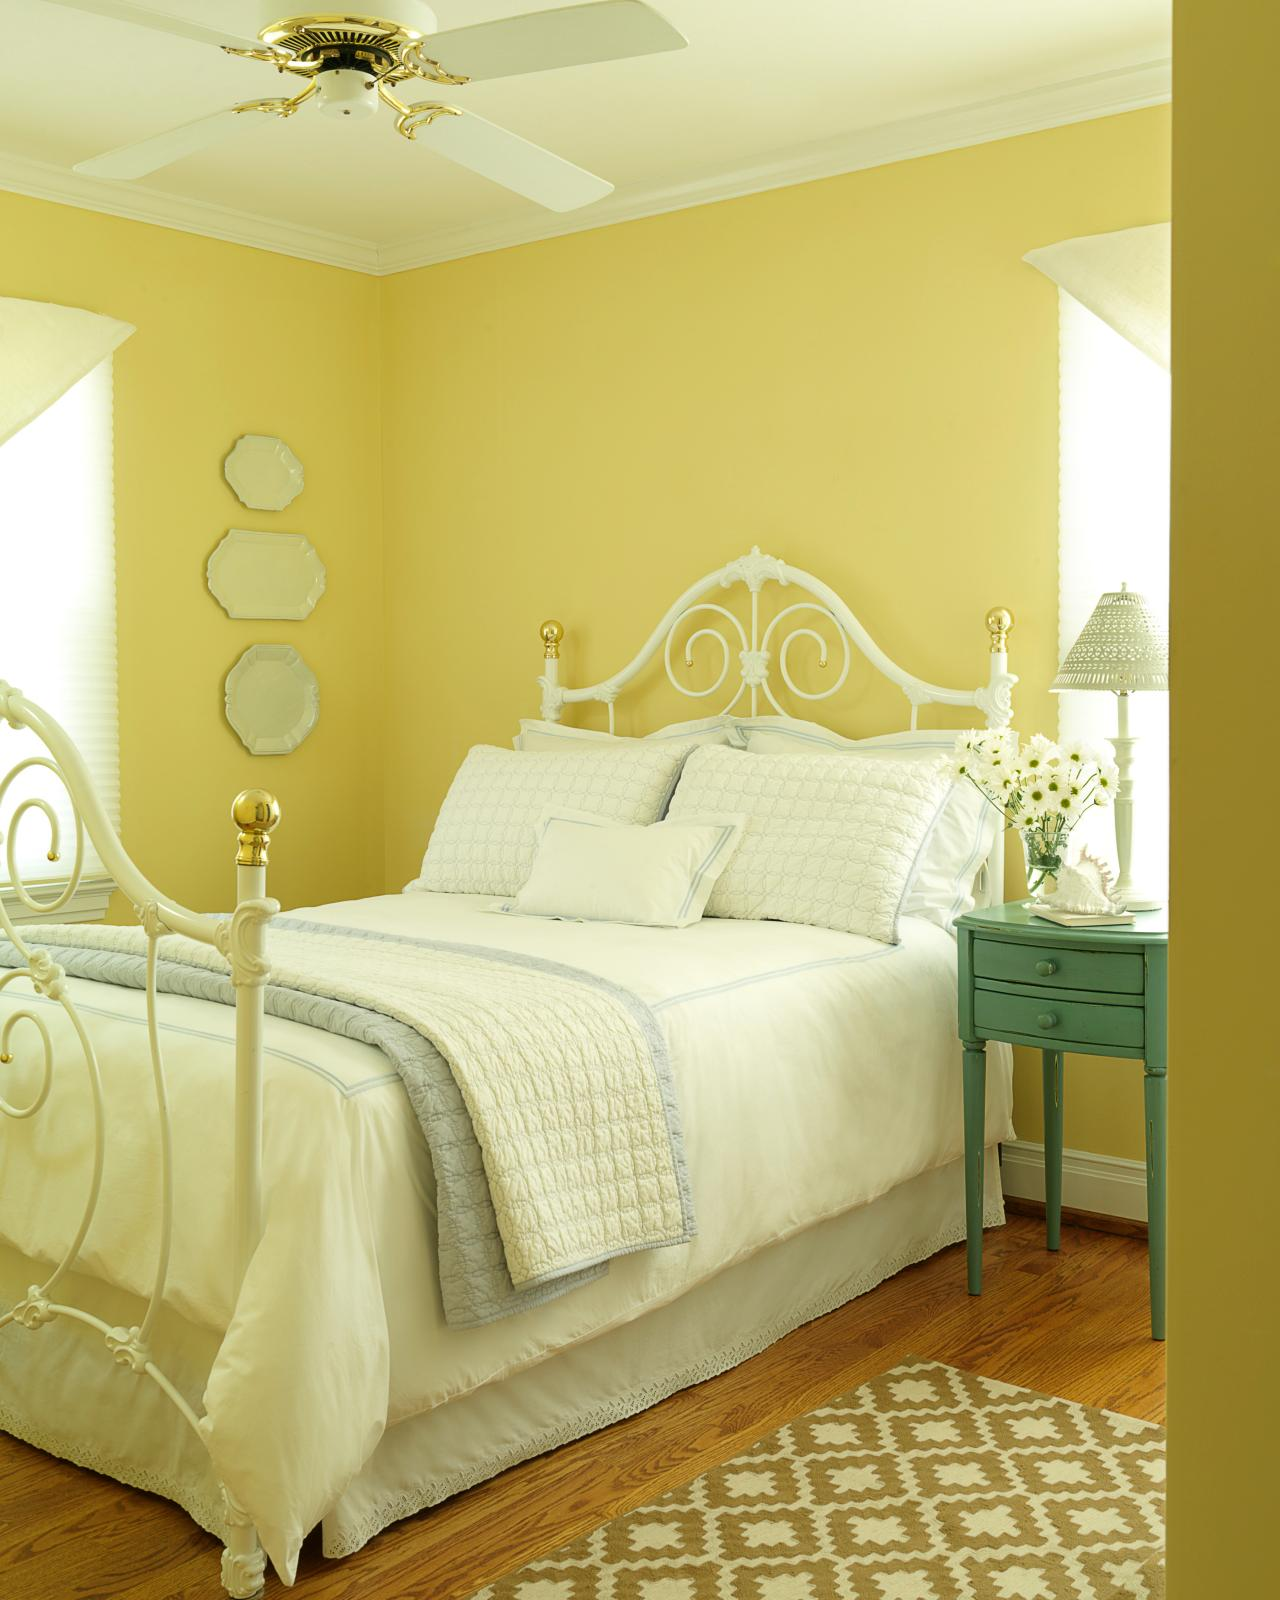 Yellow Green Bedroom Design Blinds For Bedroom Simple Bedroom Design Ideas For Girls Bedroom Colour With Black Furniture: 30 Beautiful Yellow Bedroom Design Ideas